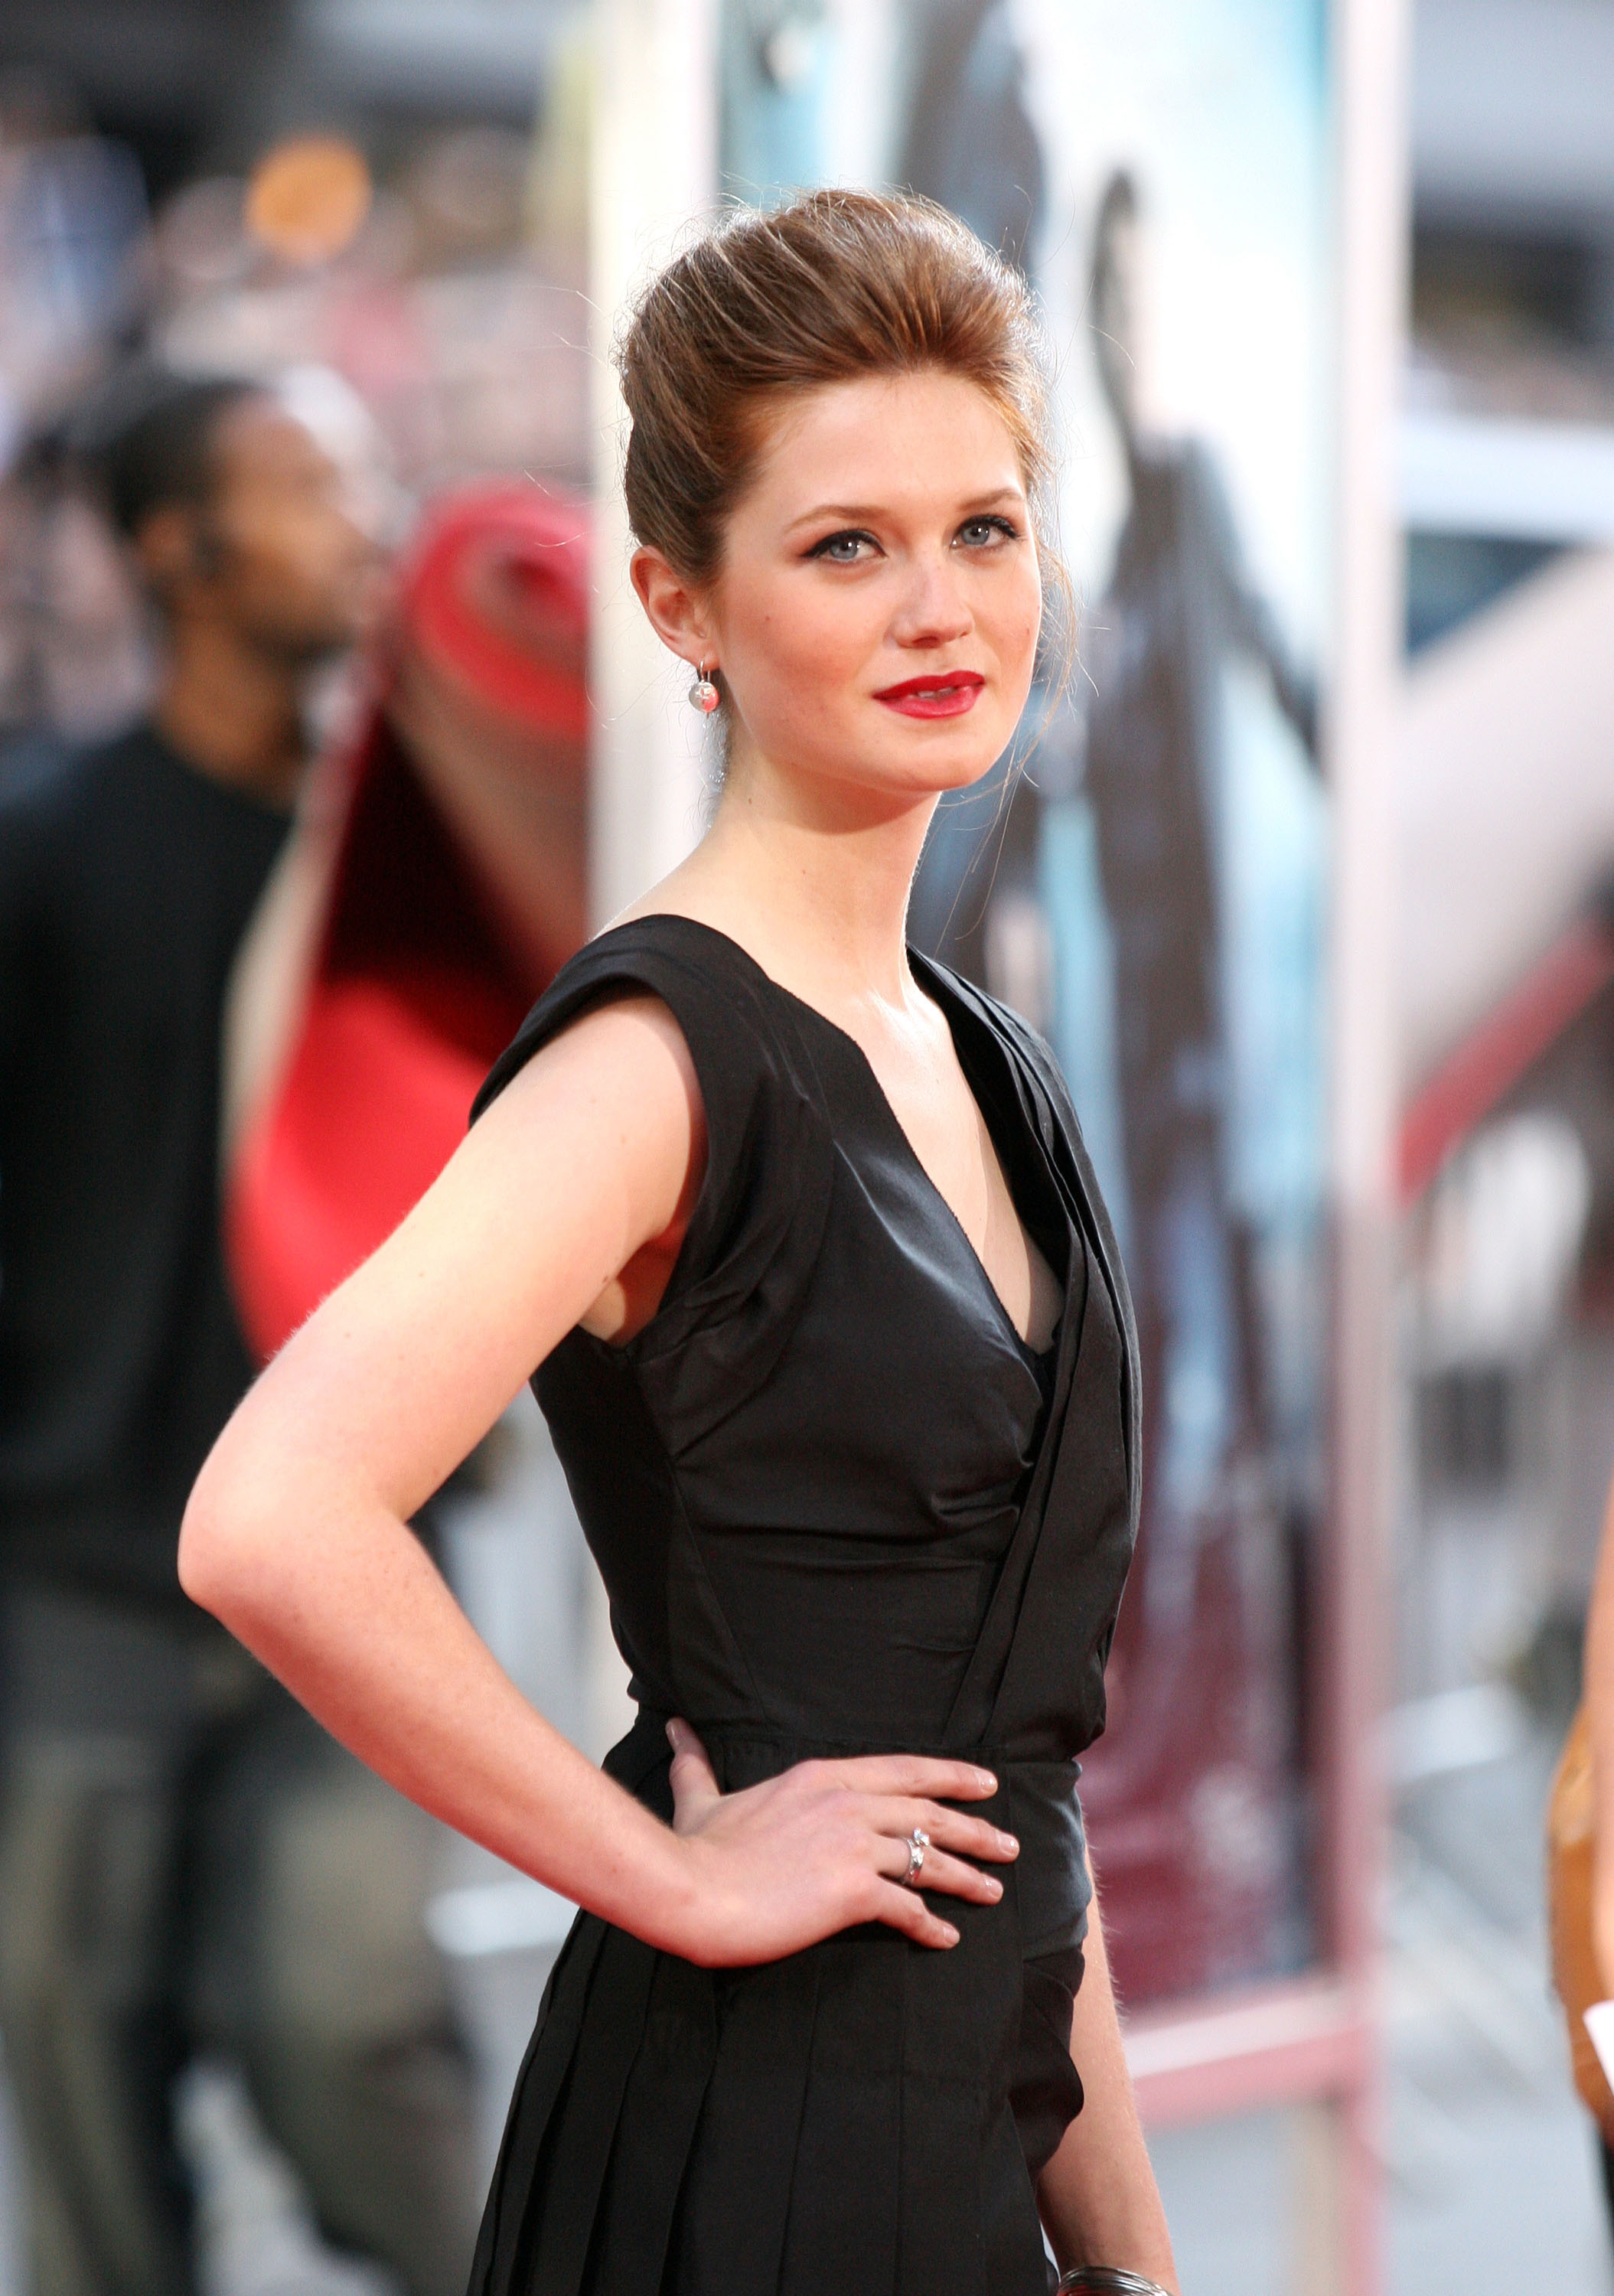 Bonnie Wright Hot Bikini Photos, Sizzling Cleavage Topless Image Wallpapers - Photoclickz-8408